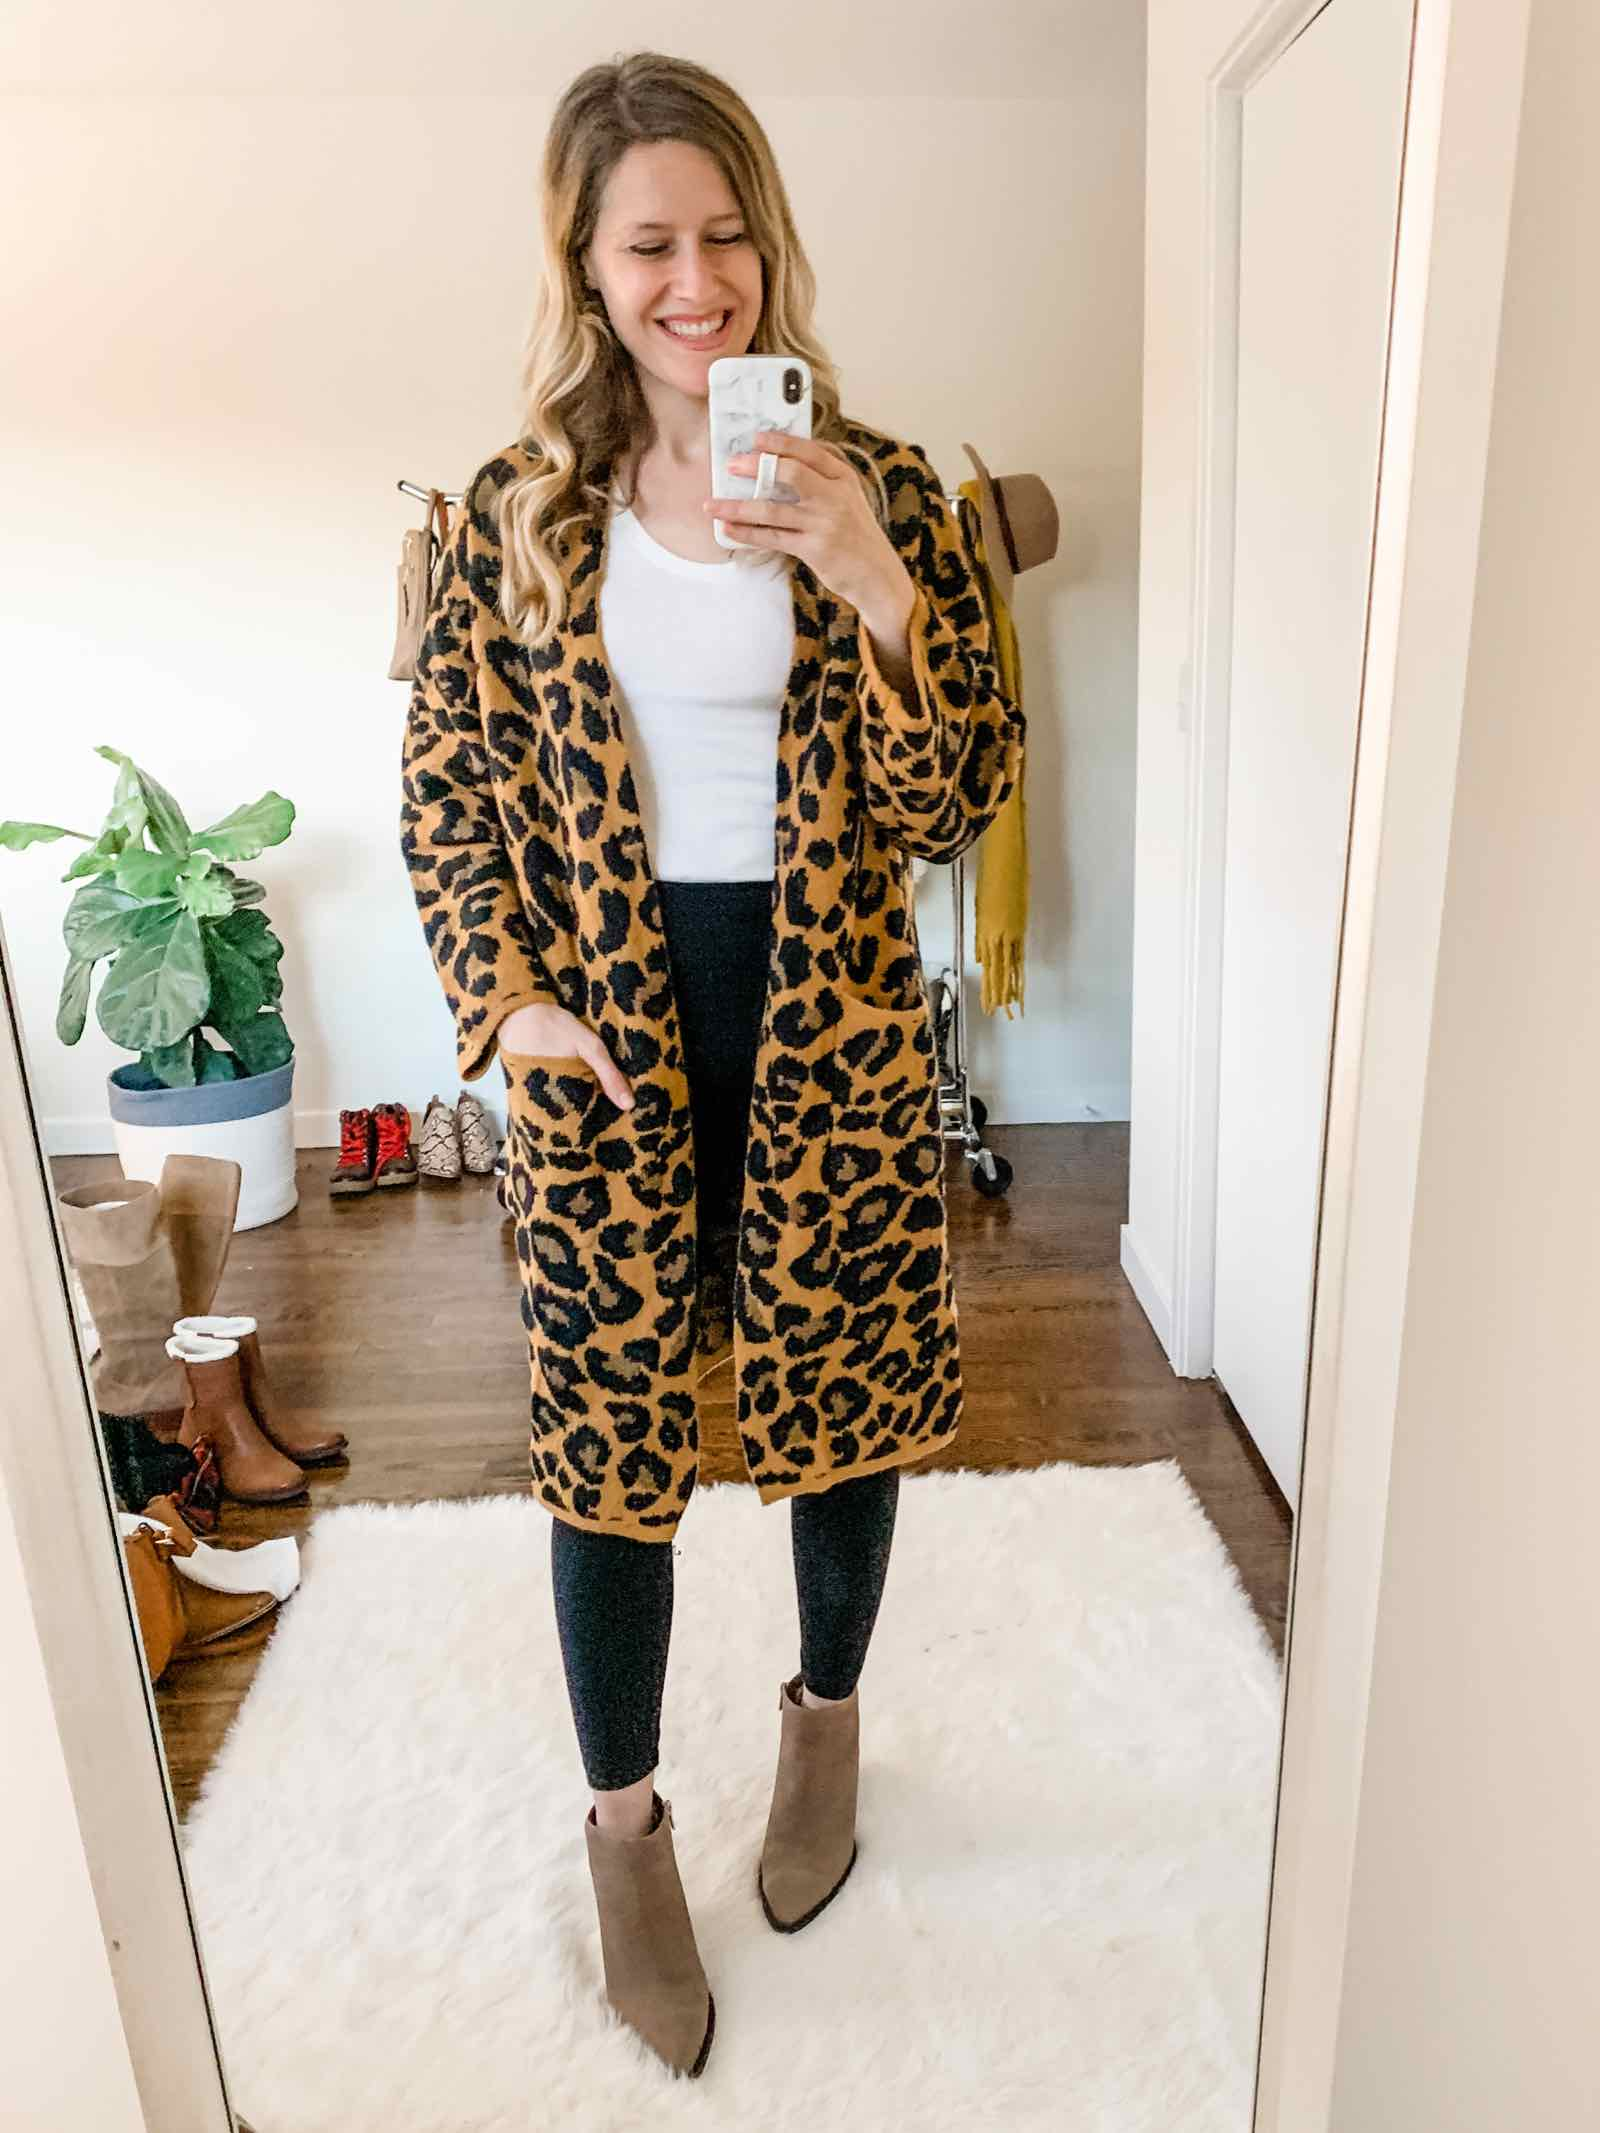 The coziest leopard print cardigan only $16.99 at Walmart!